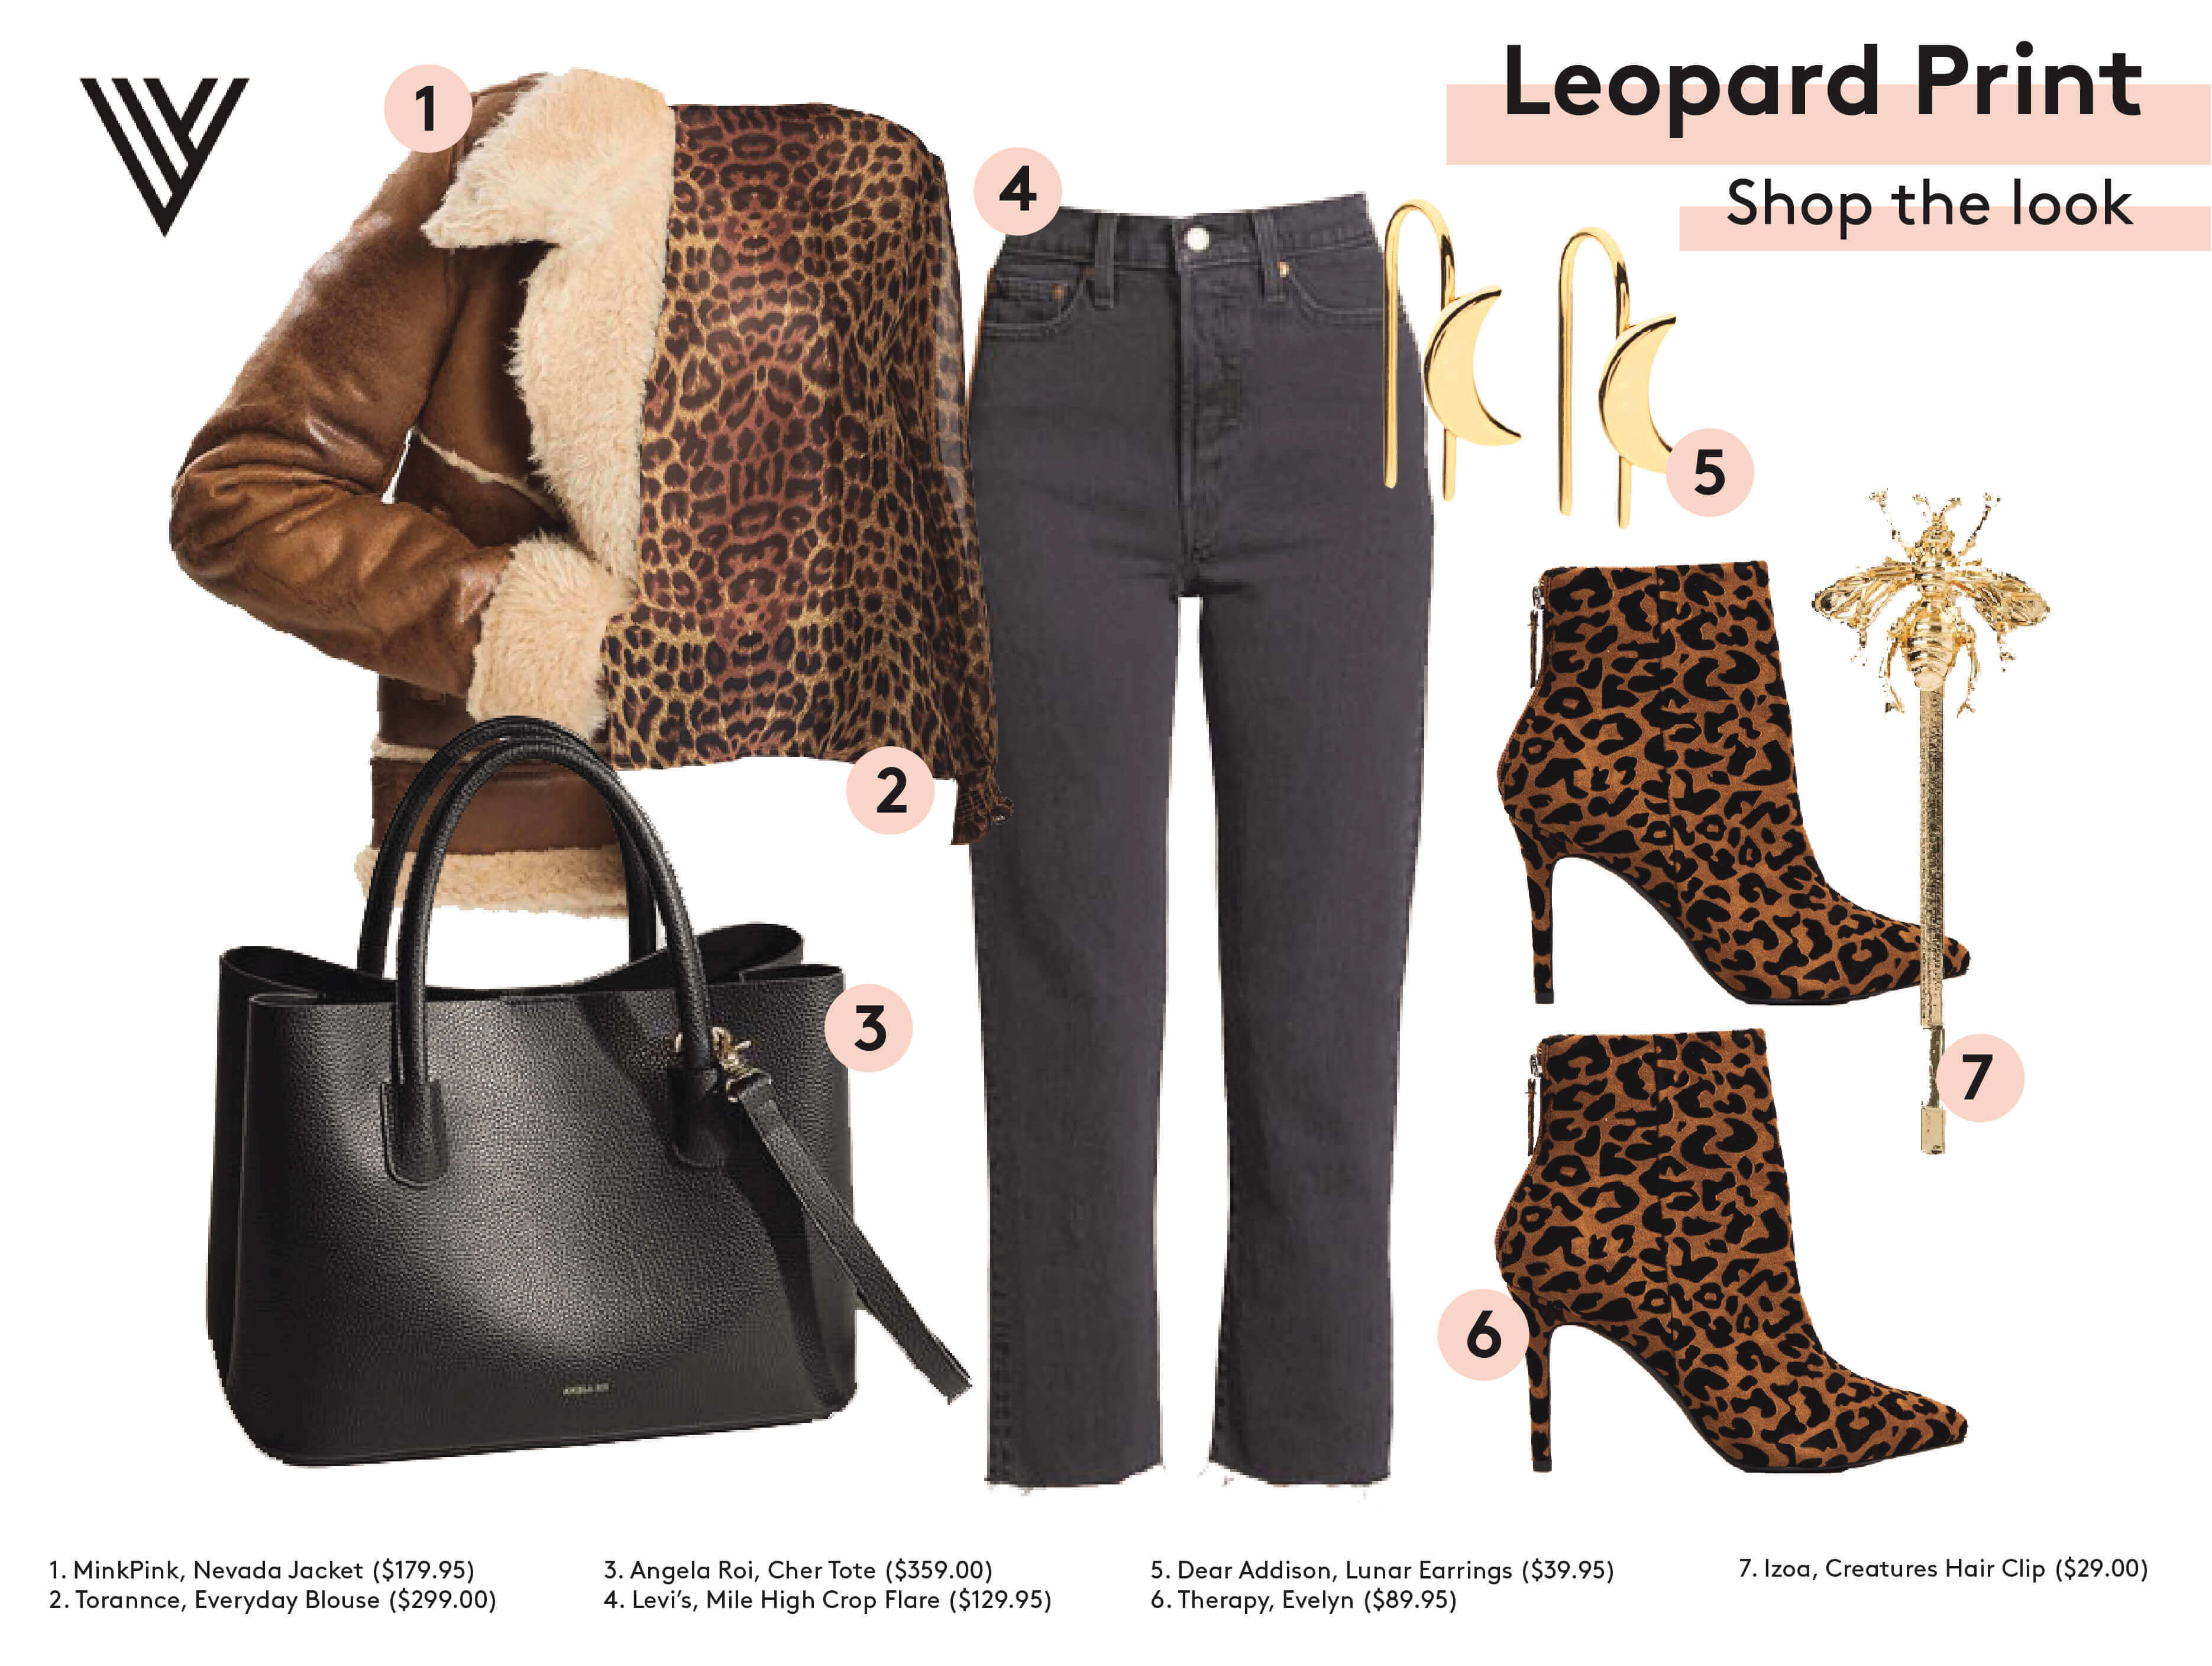 leopard and animal prints on clothing